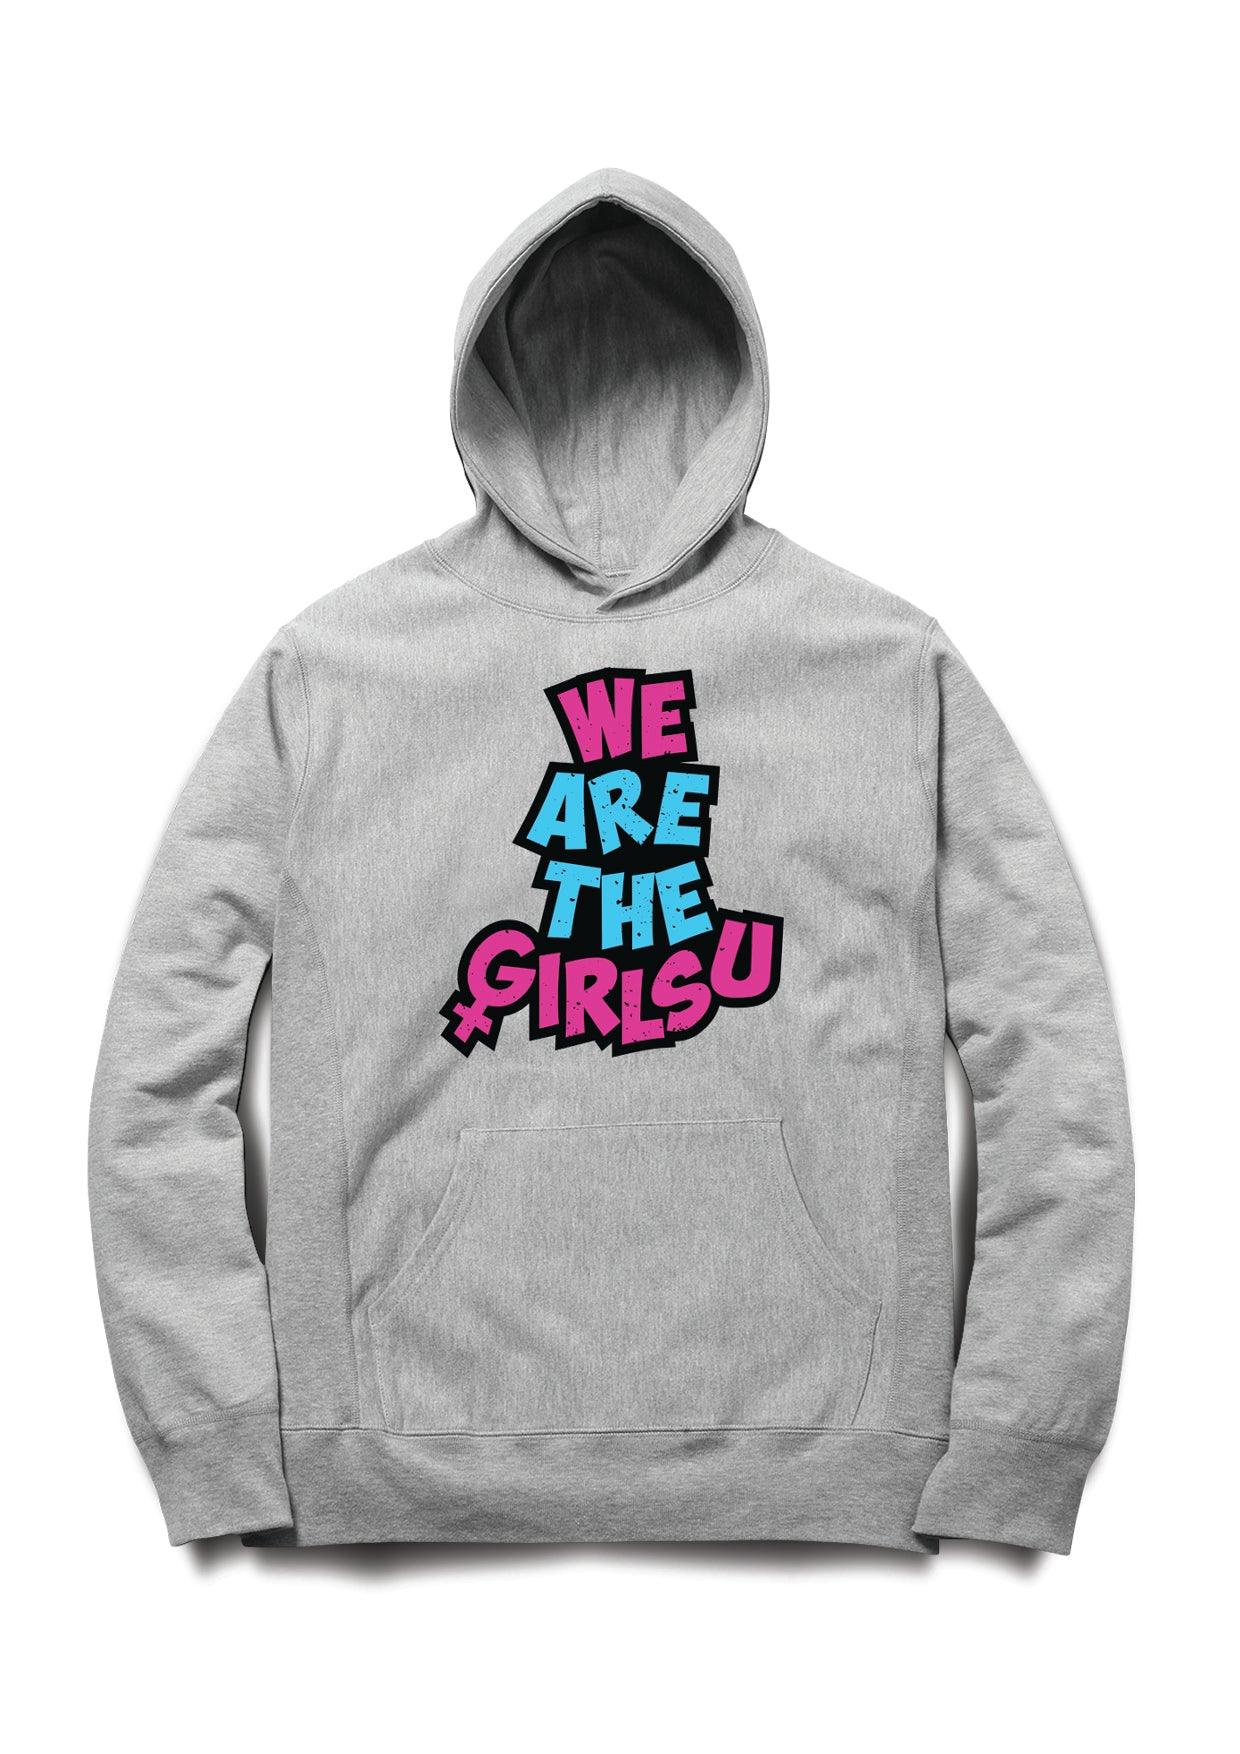 We Are The Girlsu Hoodie - Almytees